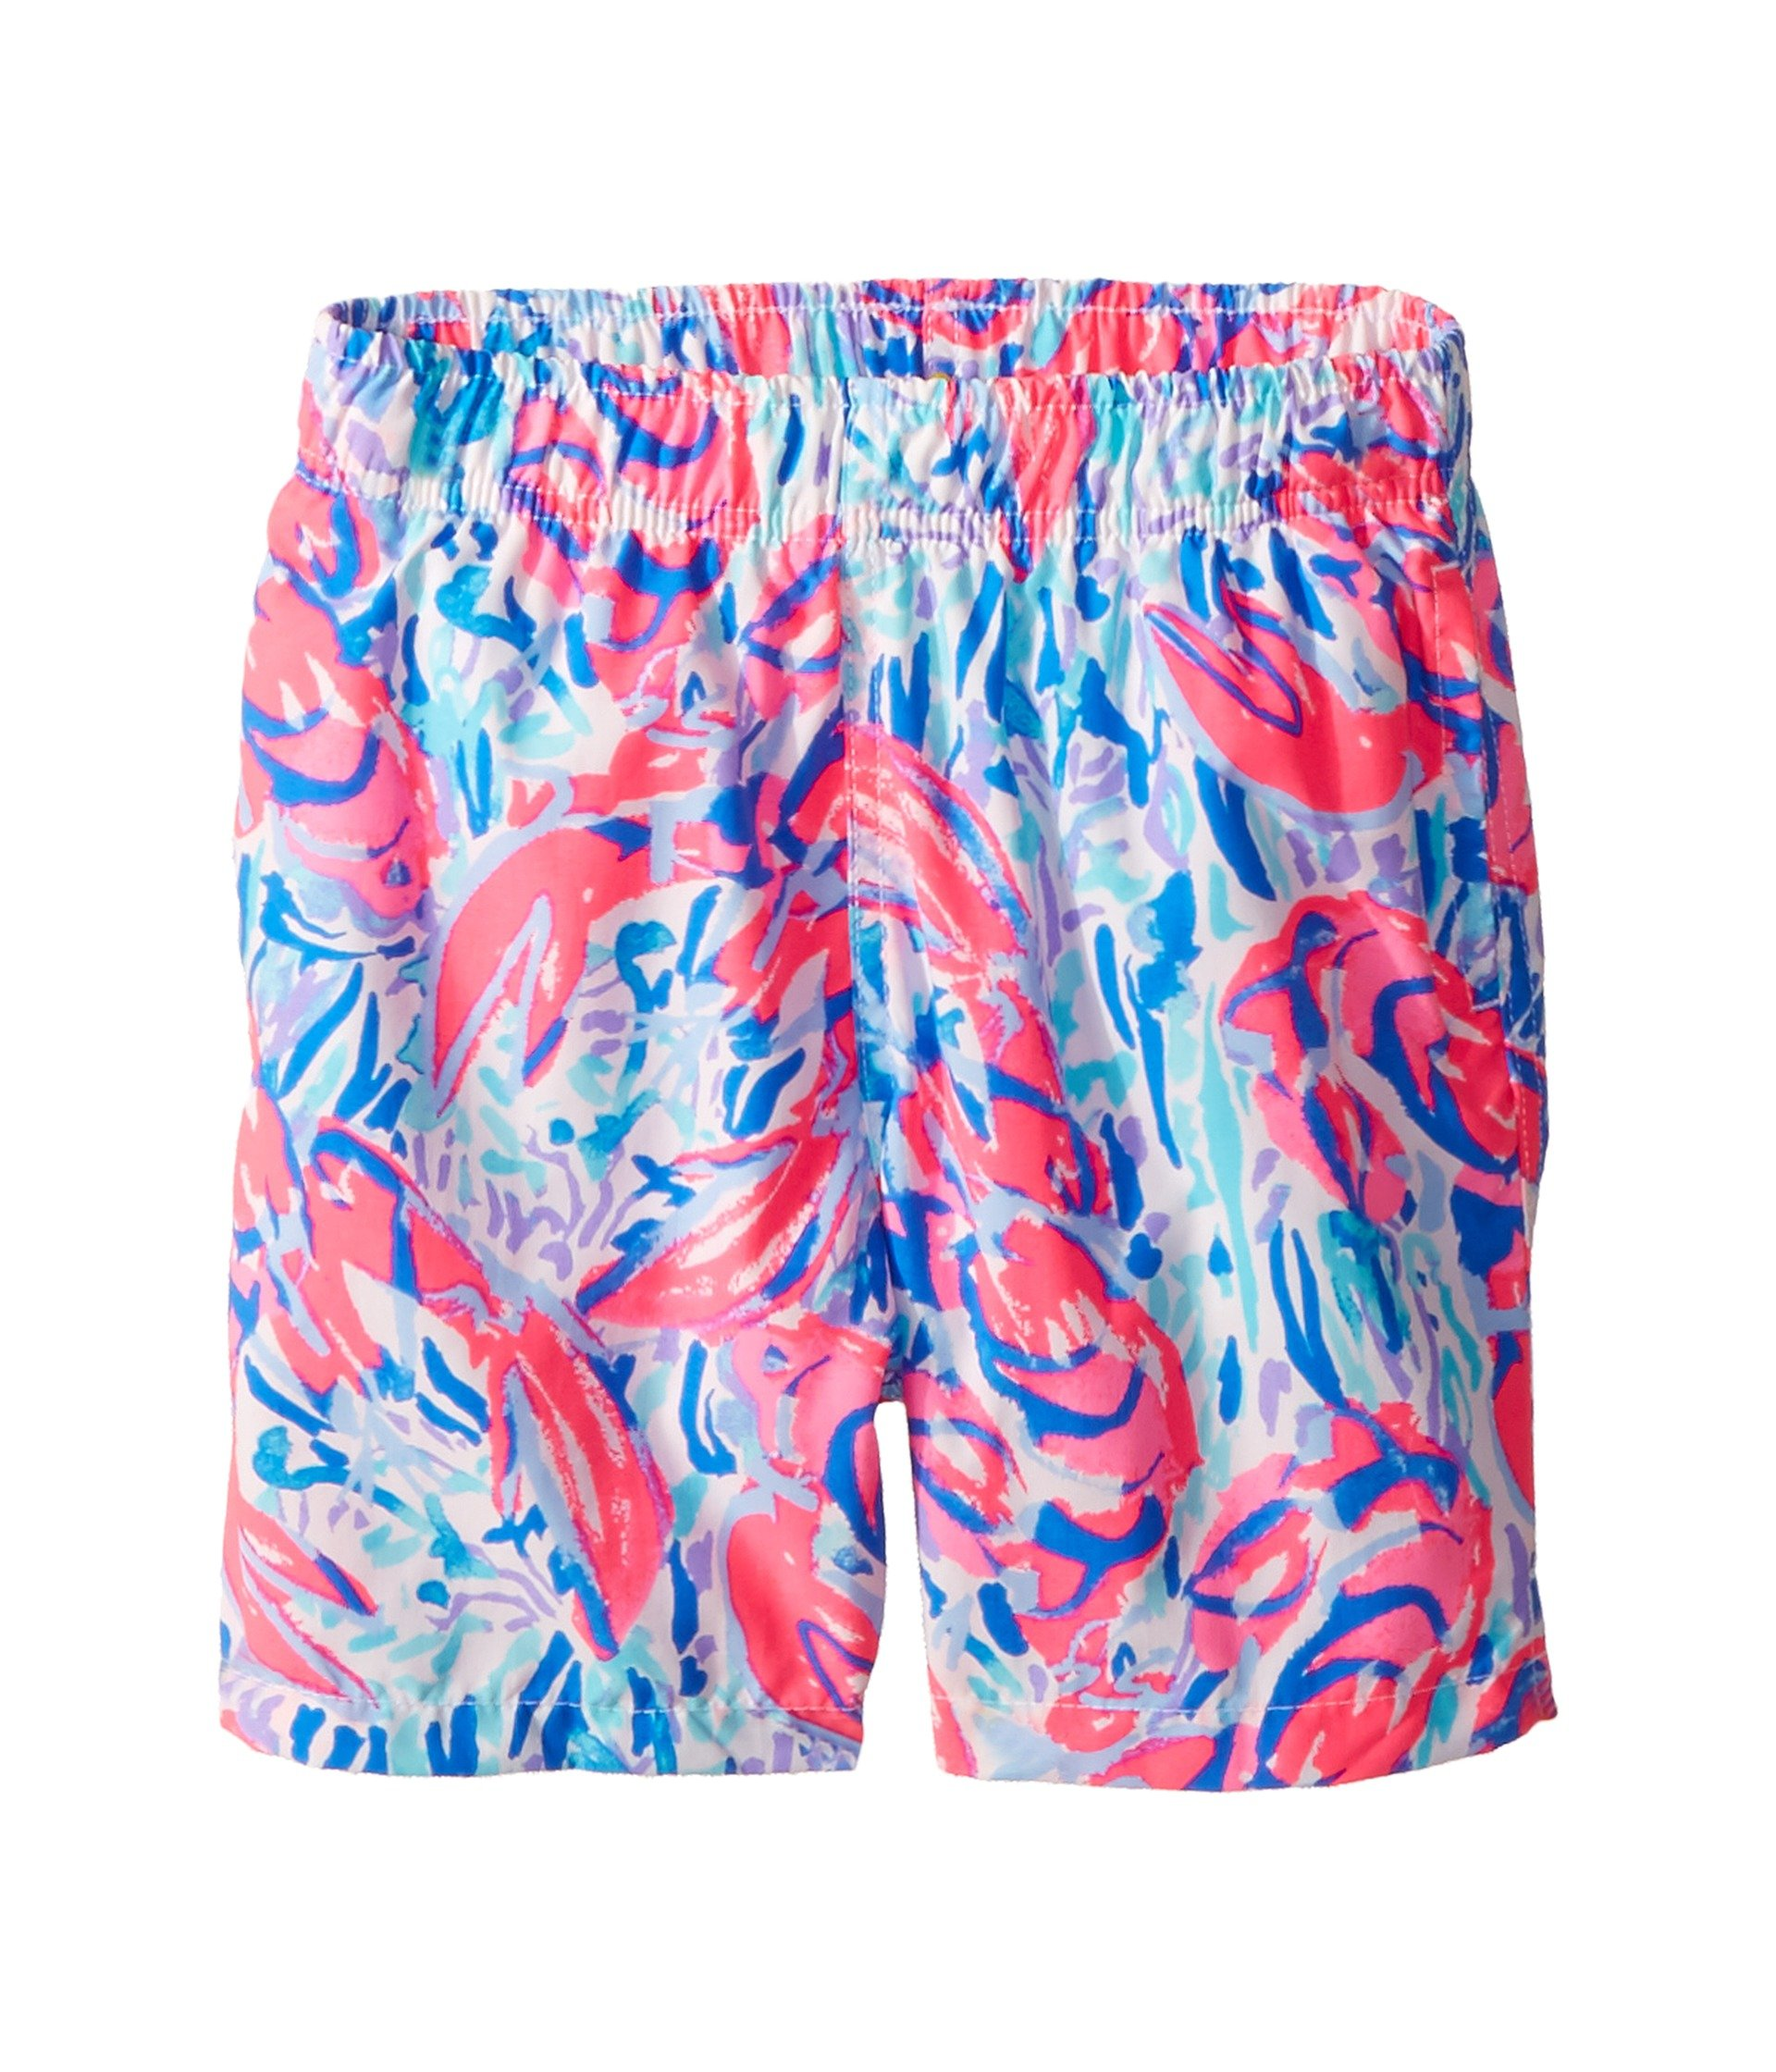 Lilly Pulitzer Kids Boy's Capri Trunks (Toddler/Little Kids/Big Kids) Cosmic Coral/Cracked Up LG (8/10 Big Kids) by Lilly Pulitzer